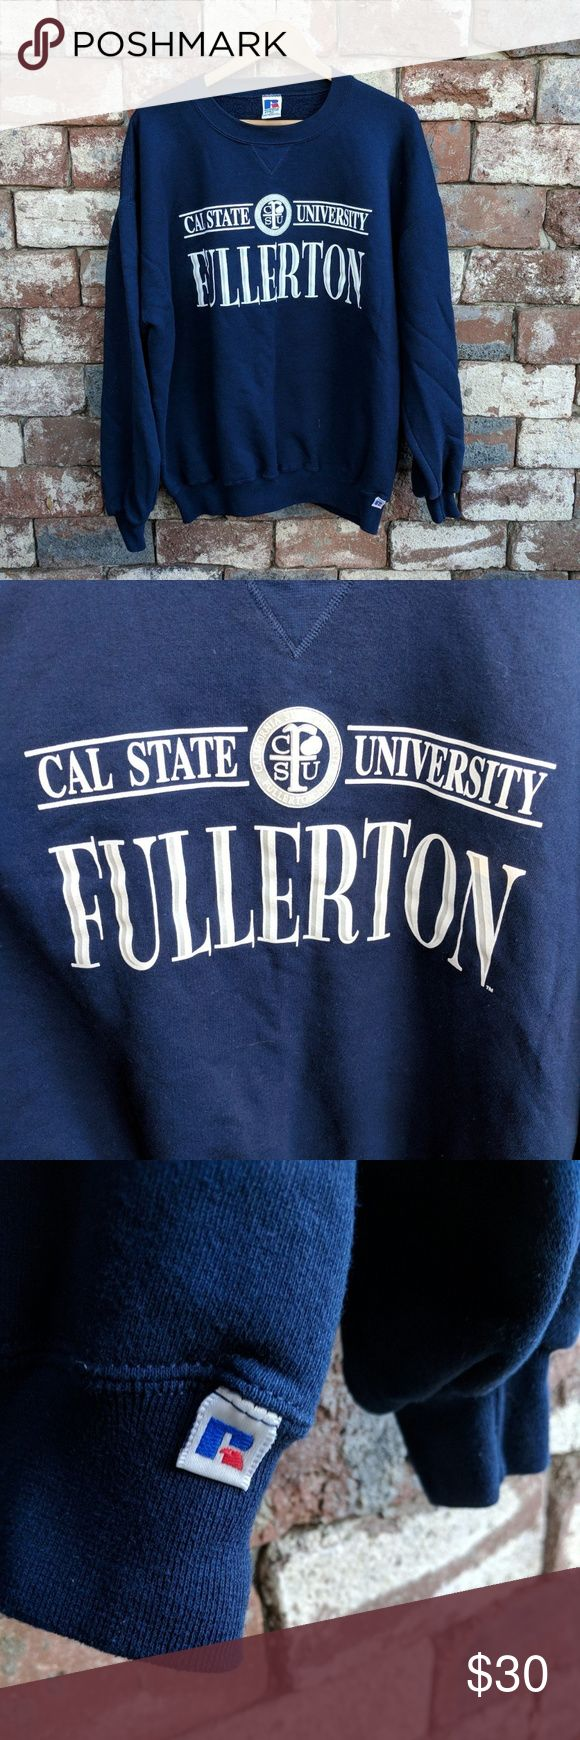 25 unique california state university fullerton ideas on vintage cal state fullerton crewneck ccuart Image collections